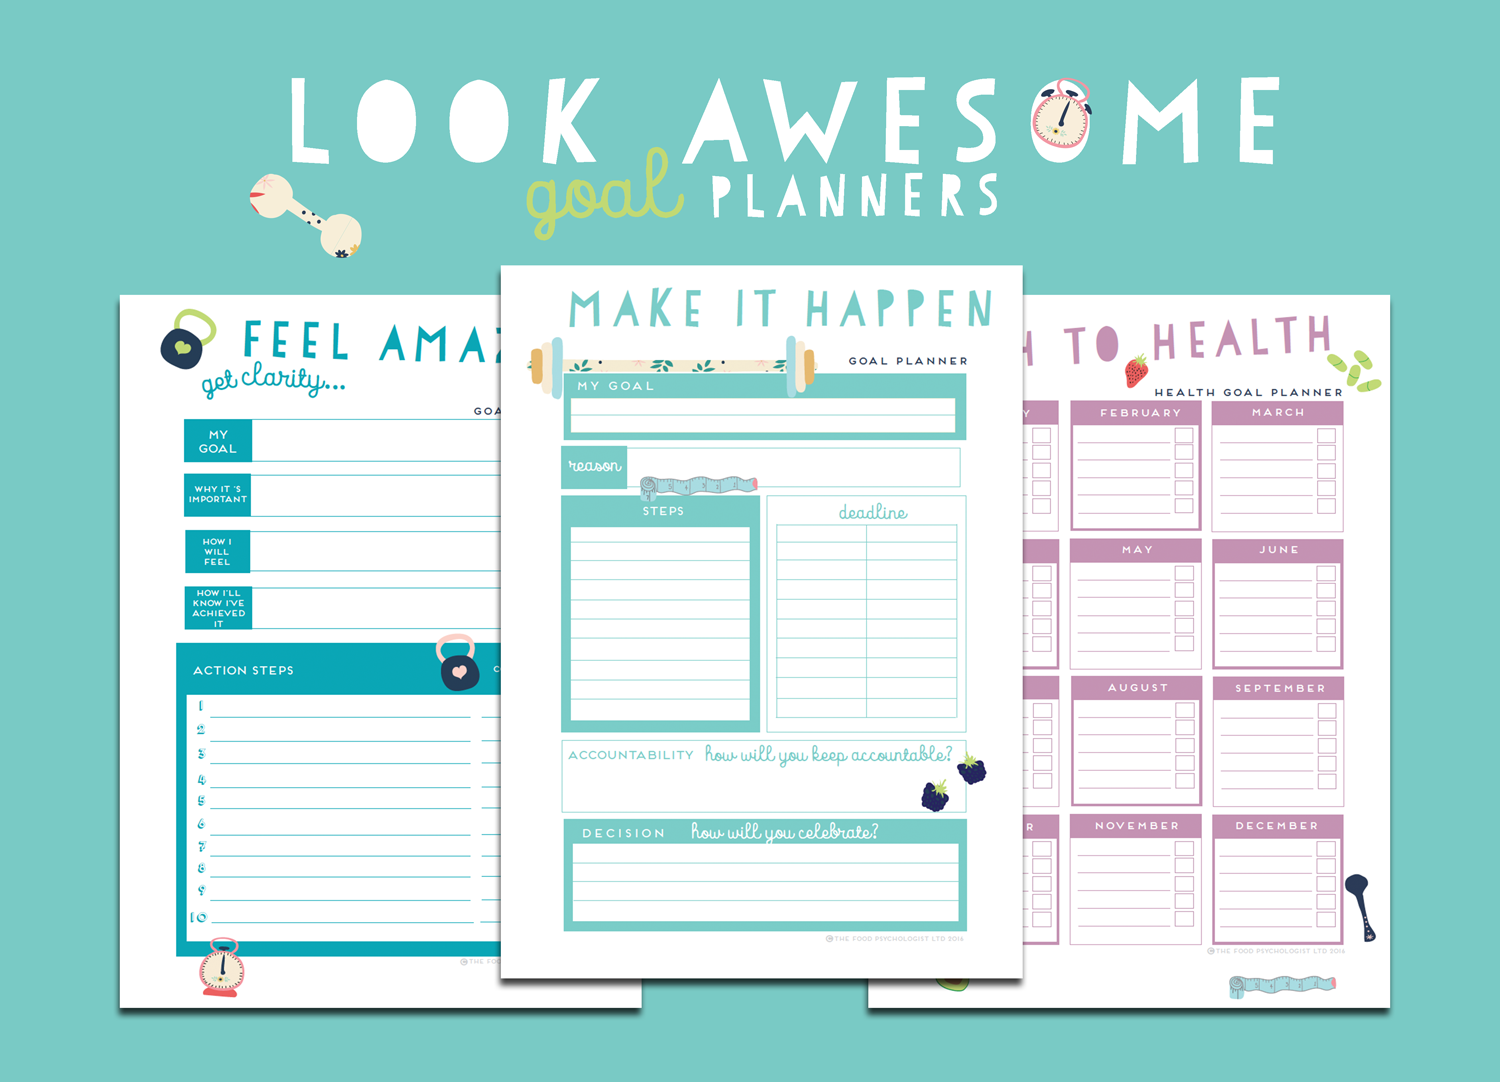 photograph relating to Goal Planners referred to as Glimpse Remarkable Physical fitness Health and fitness Planner Package